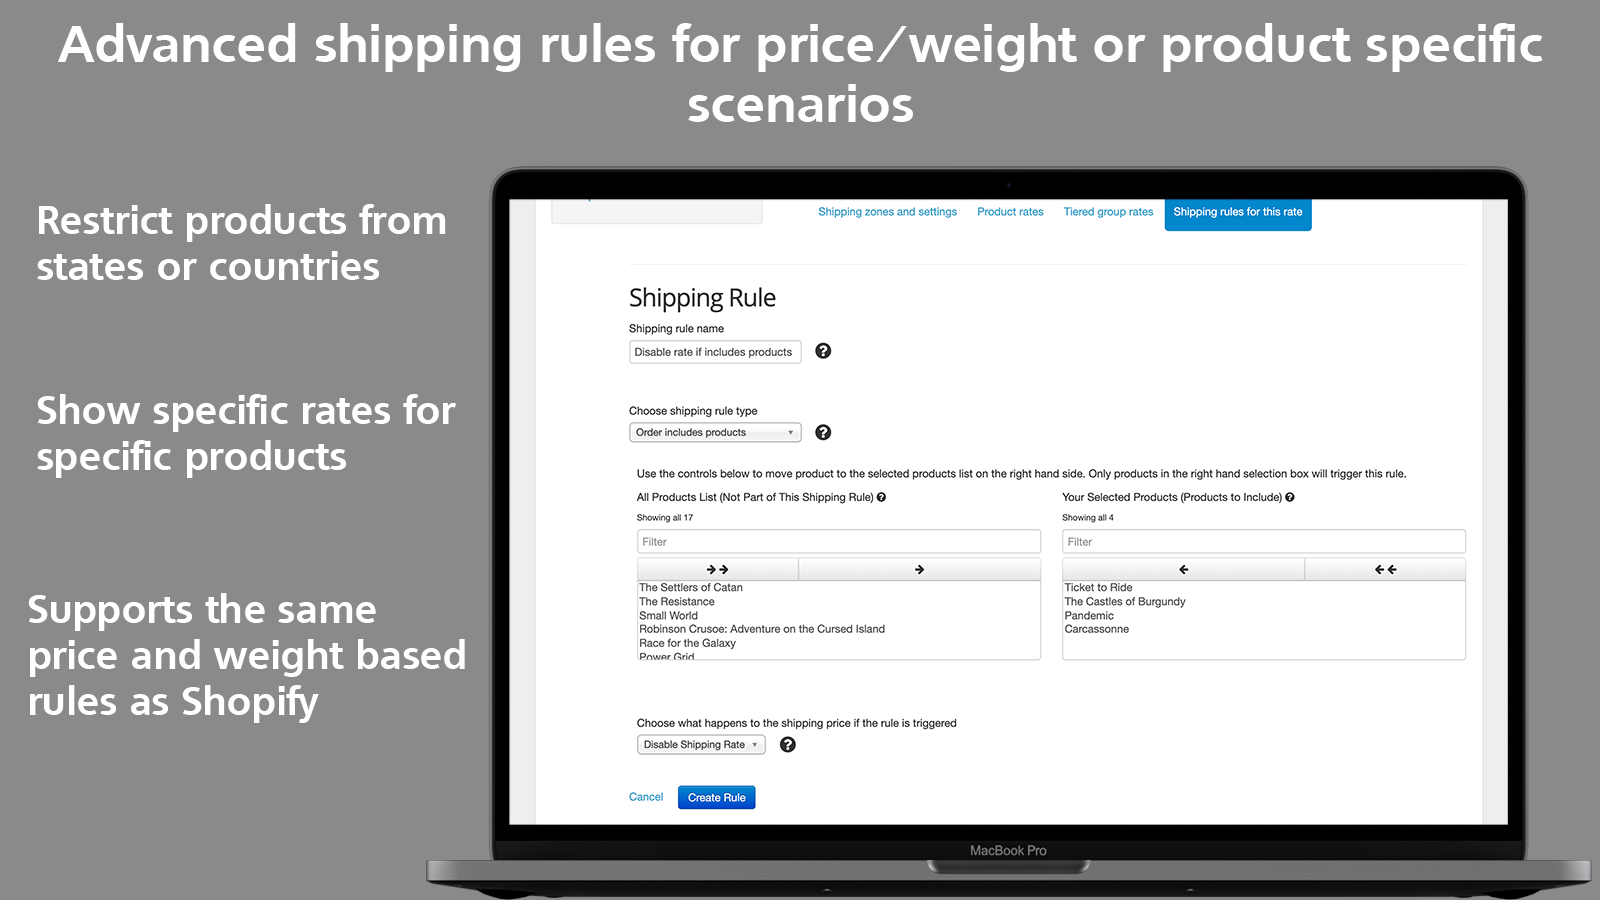 Better Shipping advanced shipping rules restrict product country